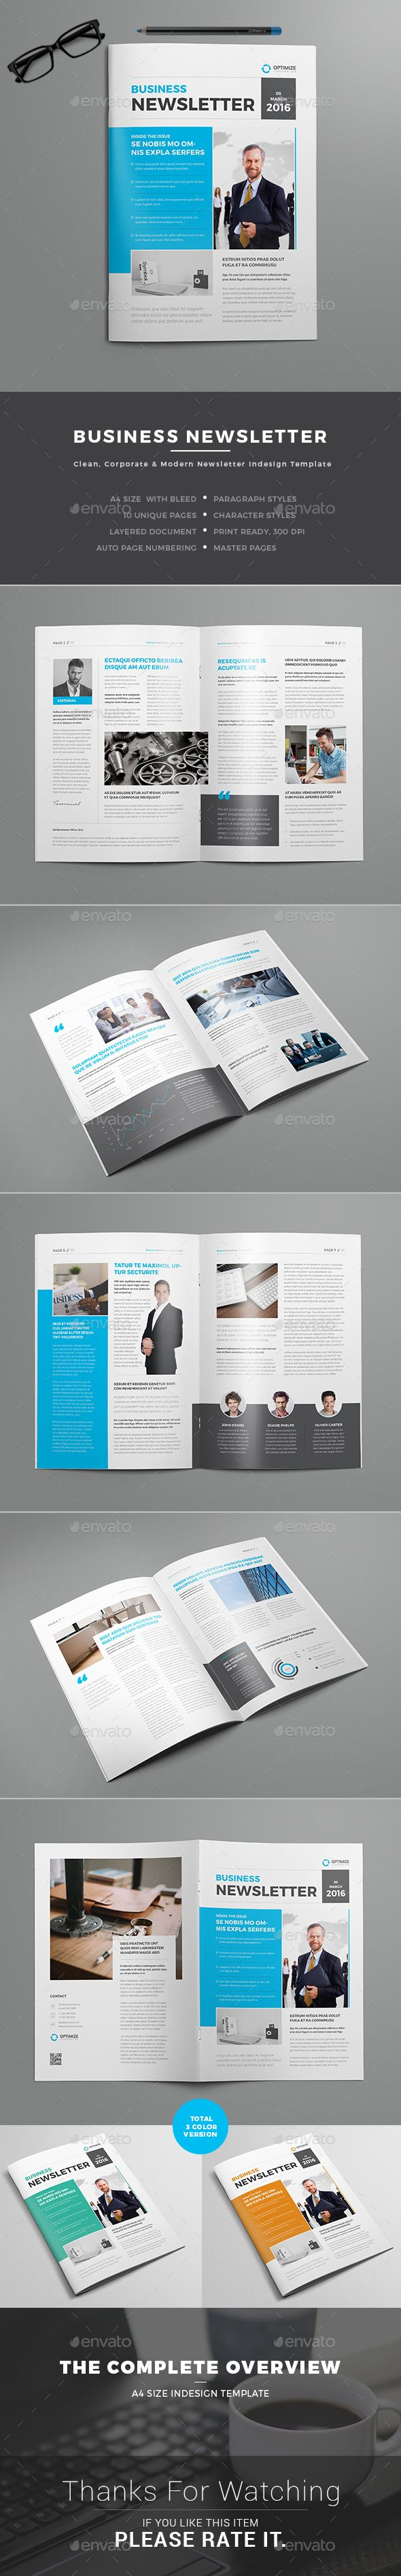 Newsletter Template 19 best Newsletter Templates images